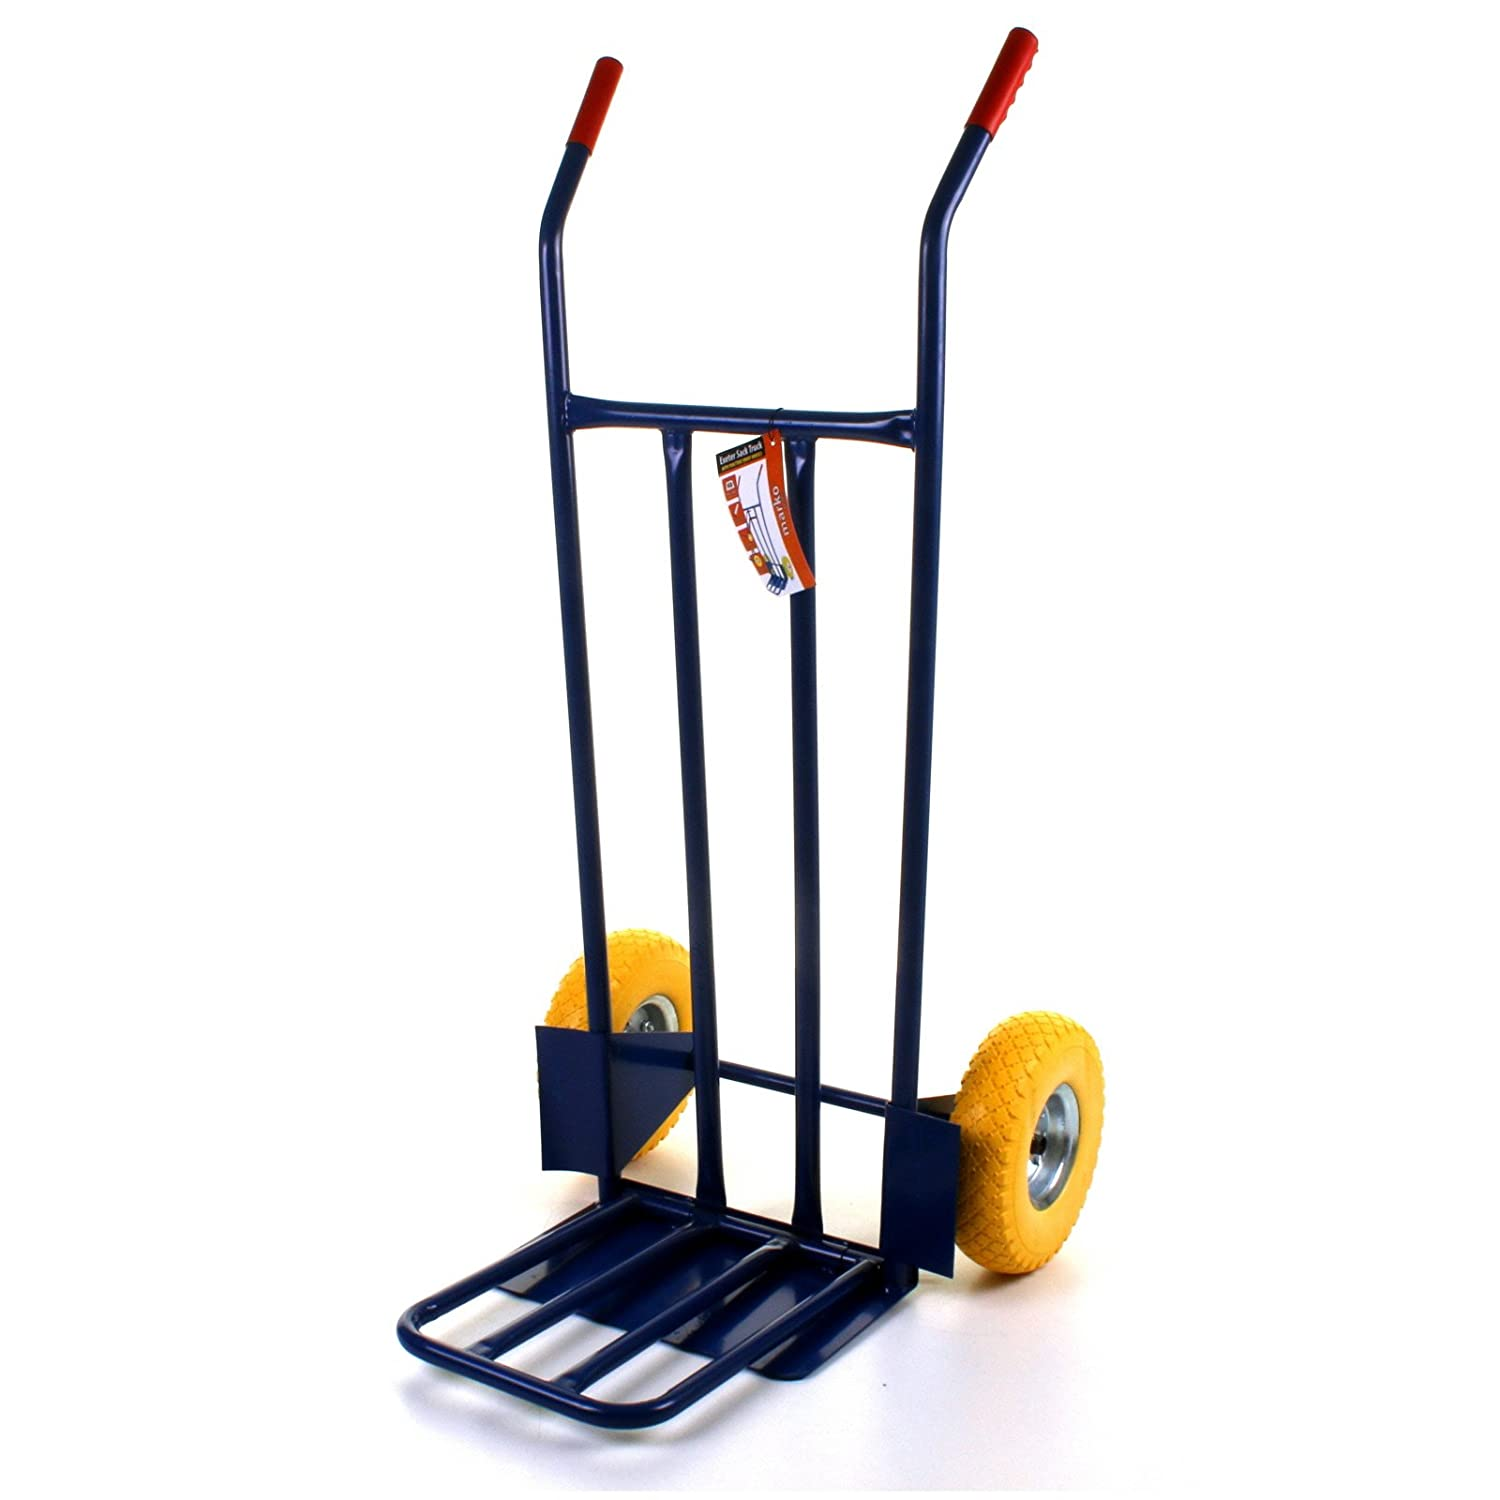 Marko Tools Exeter 600LB Sack Truck Heavy Duty Industrial Hand Trolley Warehouse Puncture Proof MTL-SKTRE